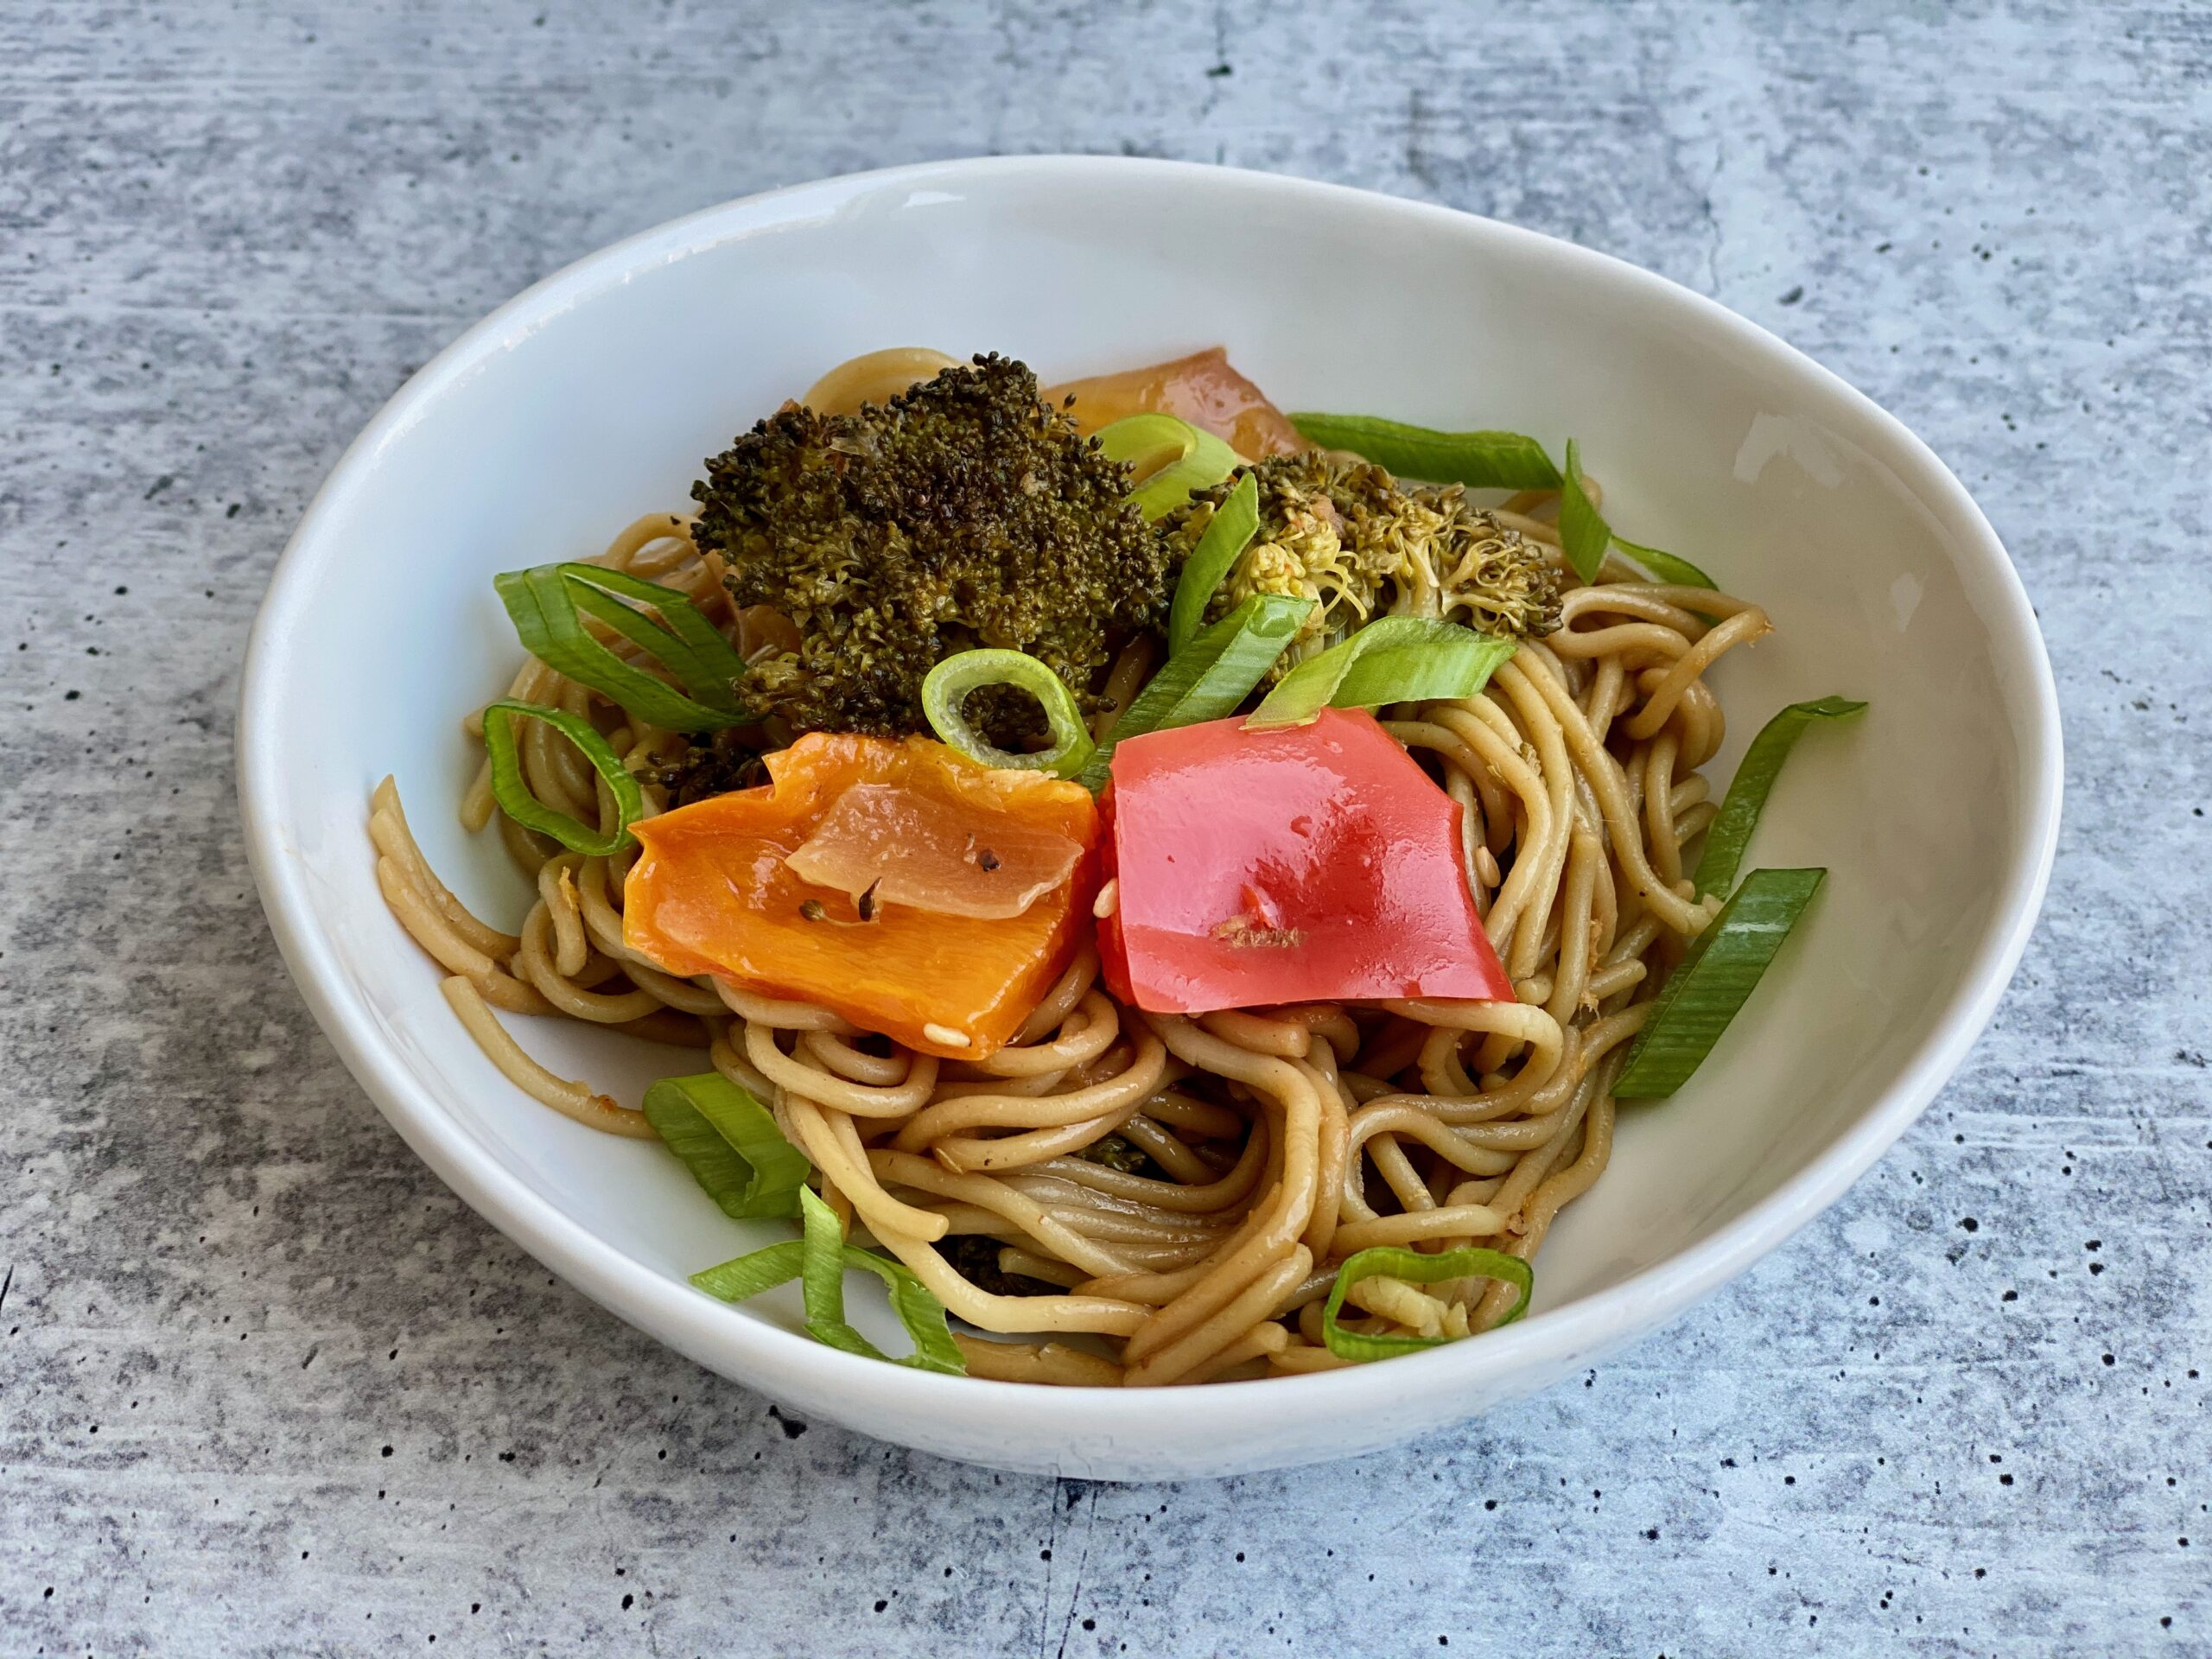 Image of a bowl of ramen noodles with veggies